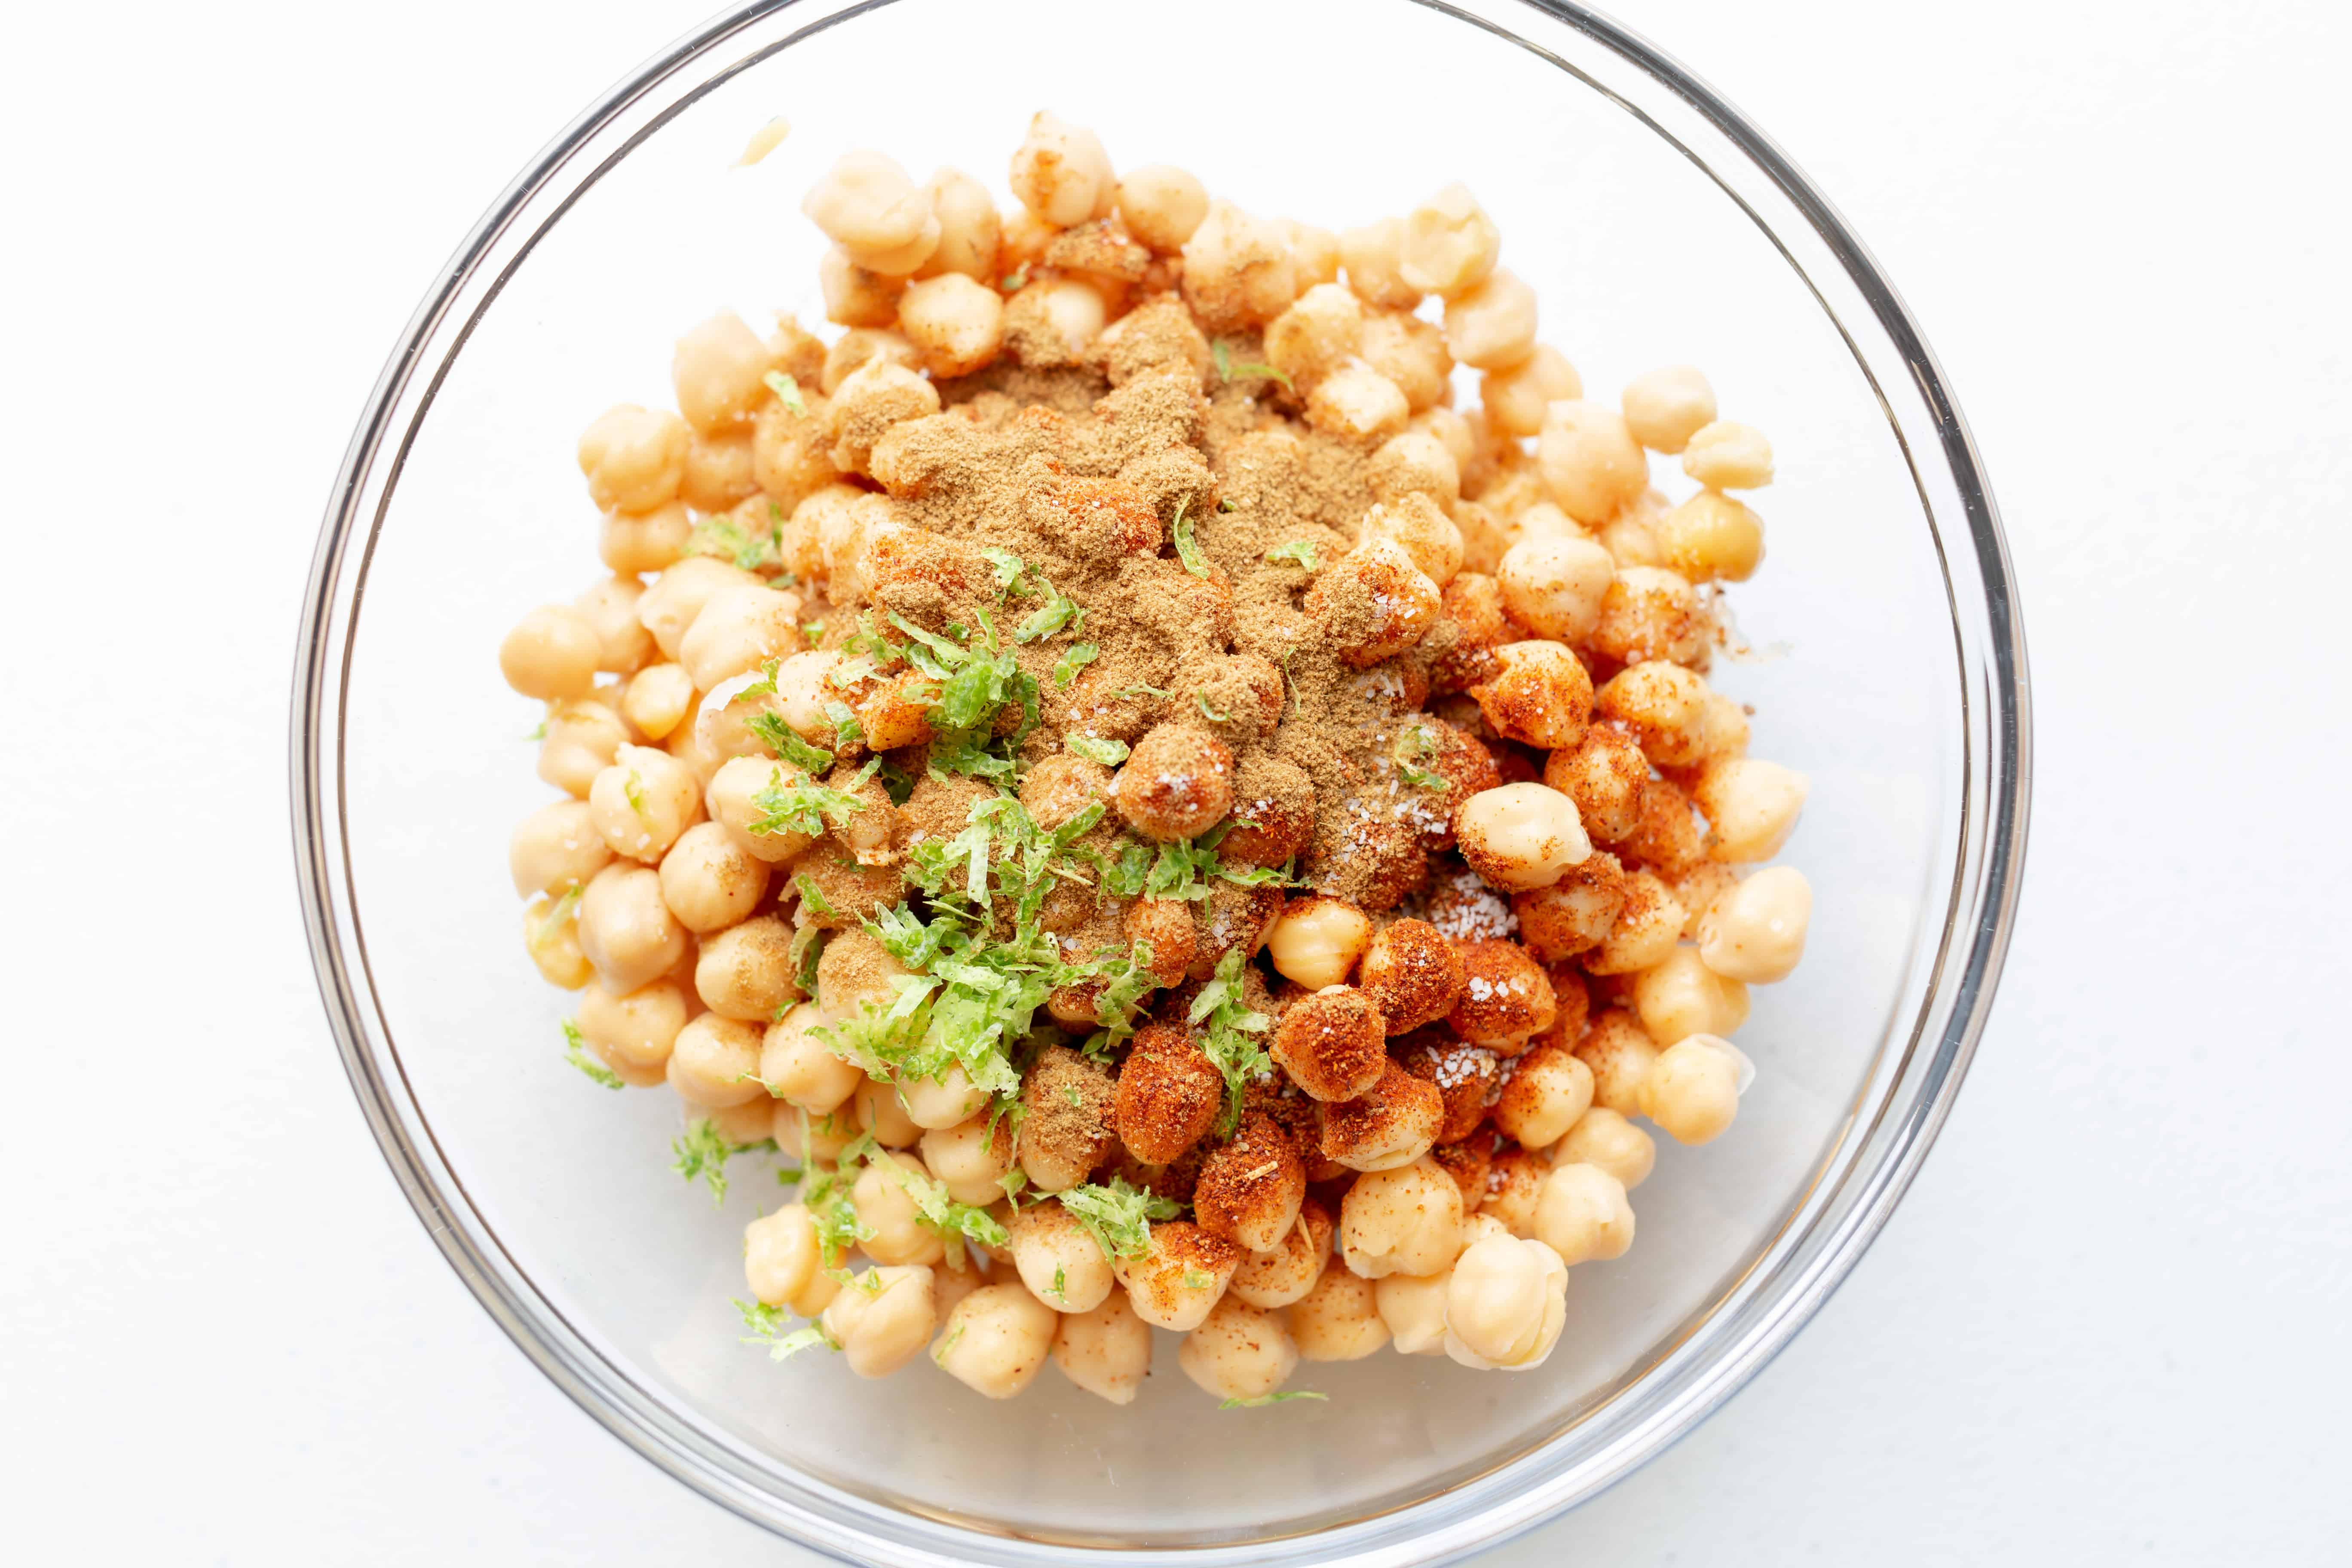 chickpeas with seasonings in a bowl